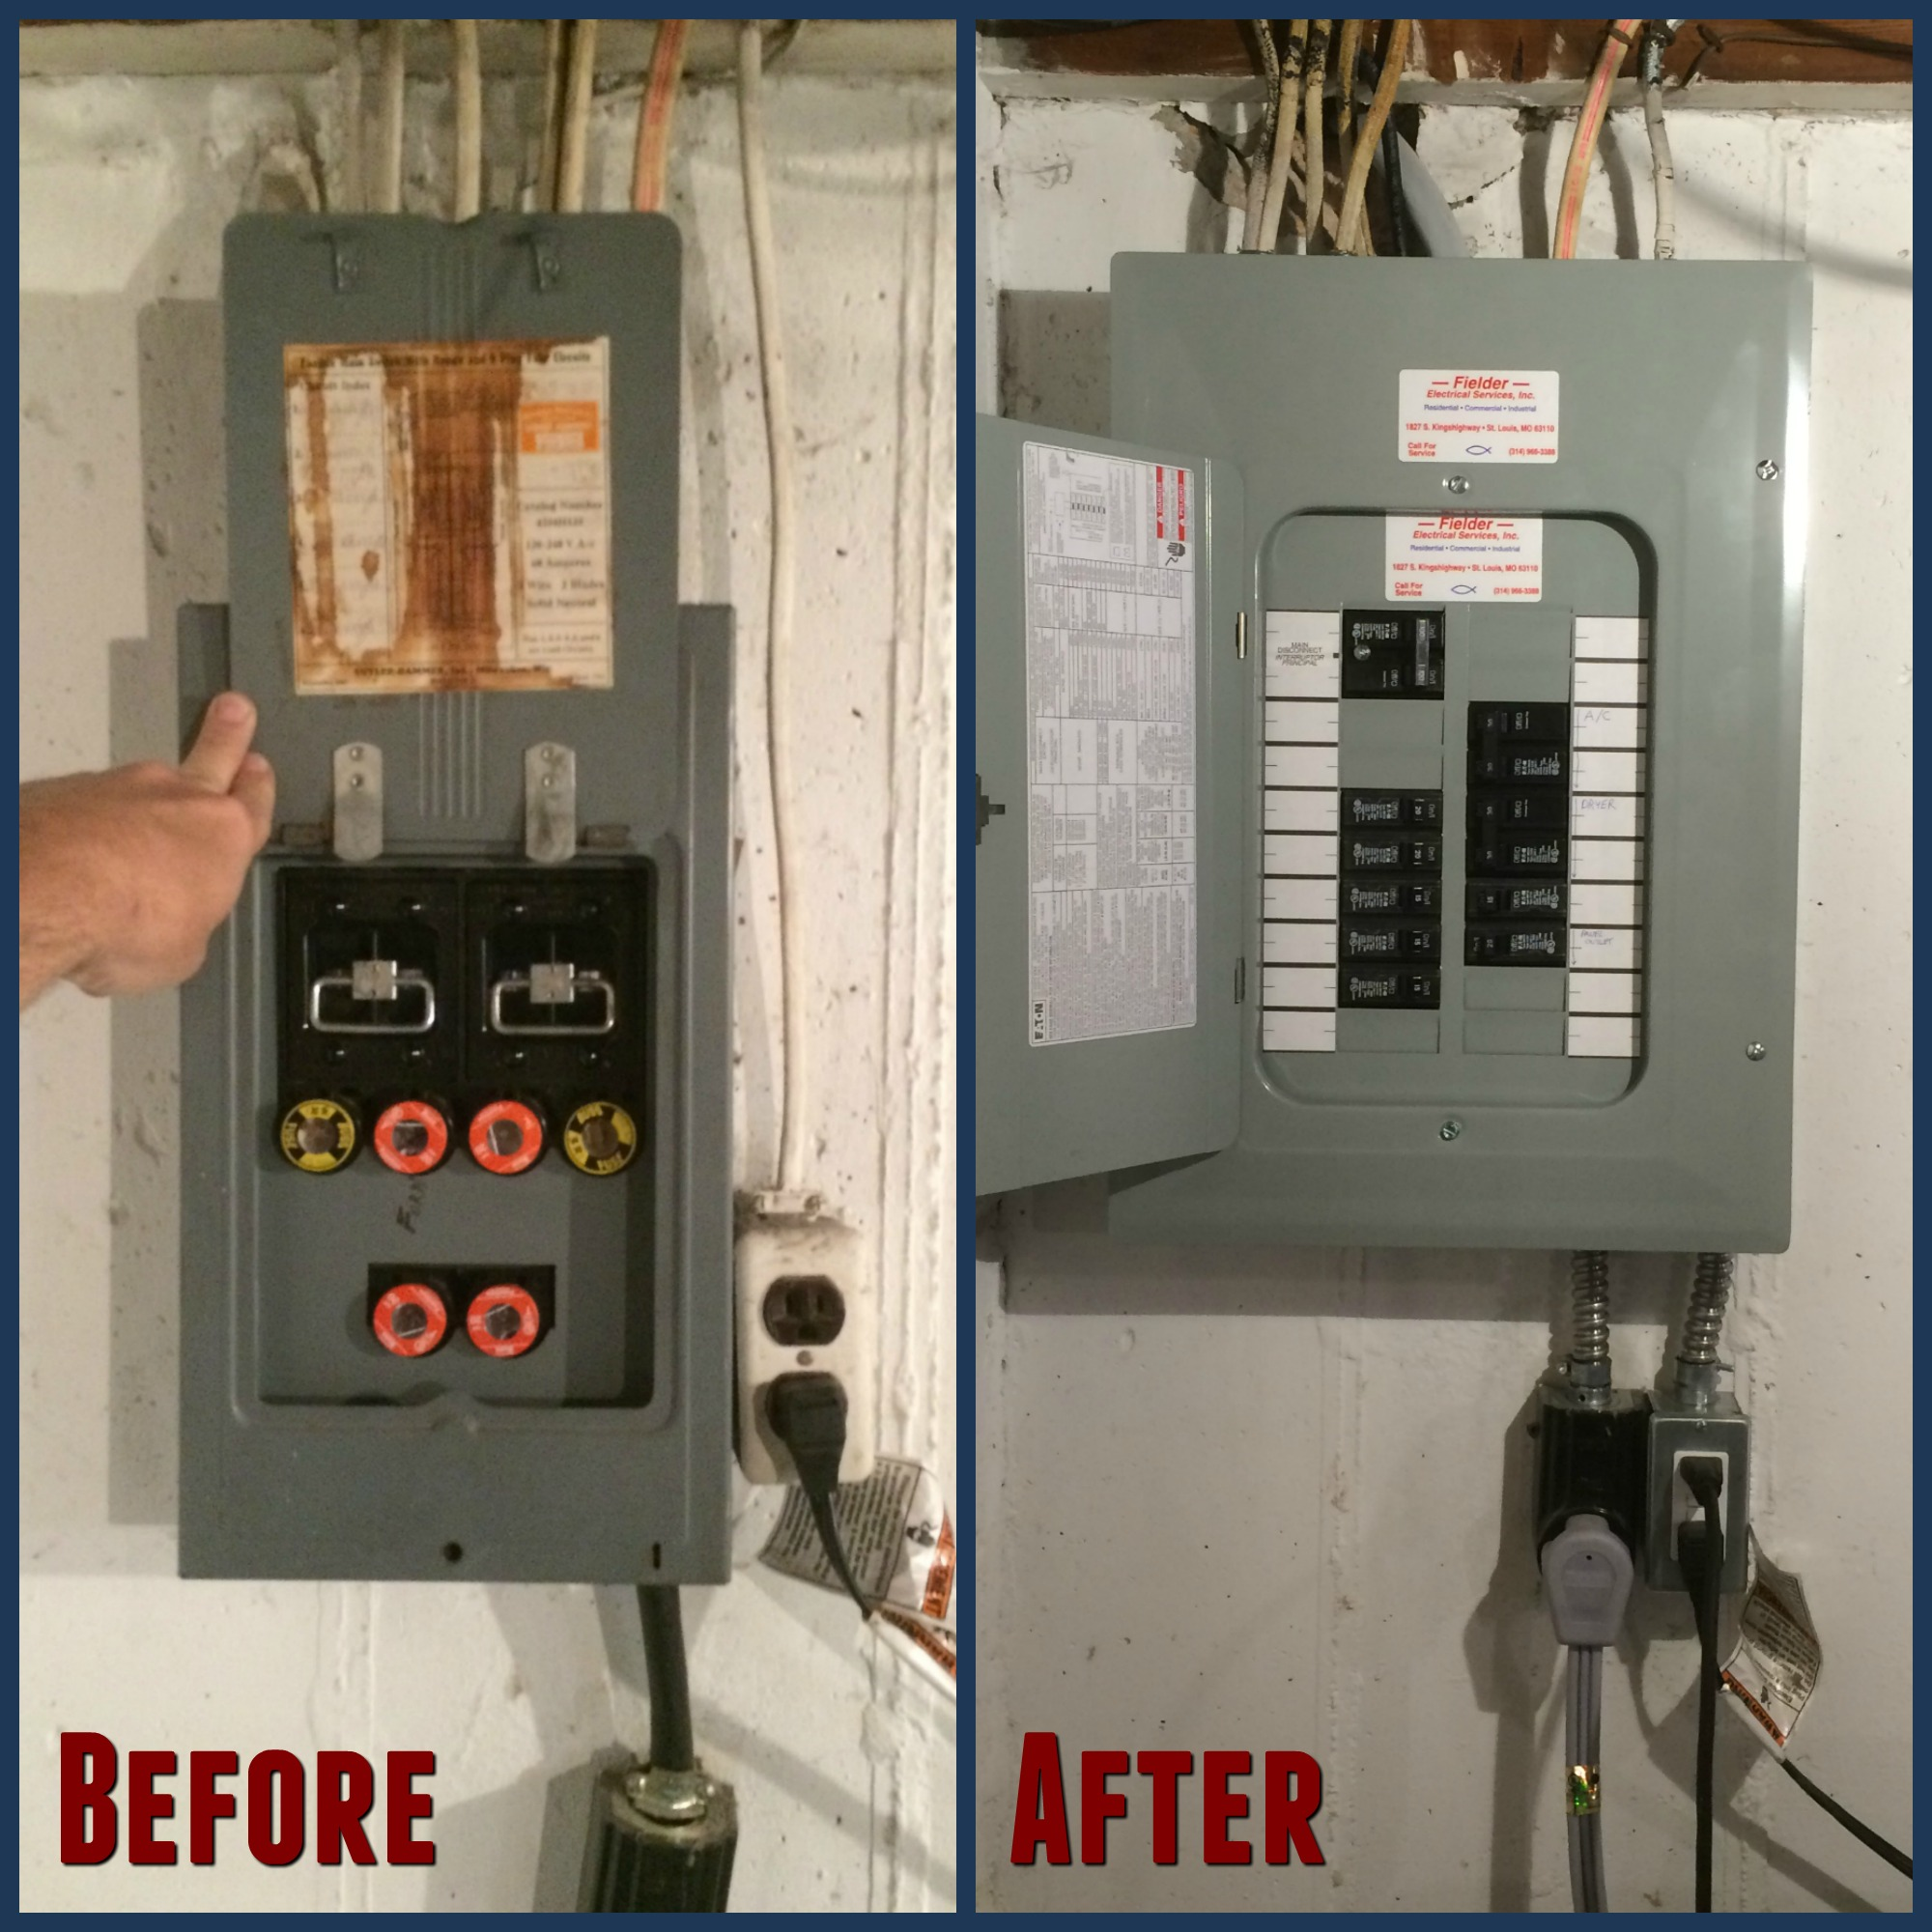 Fuse box replaced with electrical panel replace fuse box with breaker box fuses for circuit panel \u2022 wiring how to replace fuse in breaker box at aneh.co